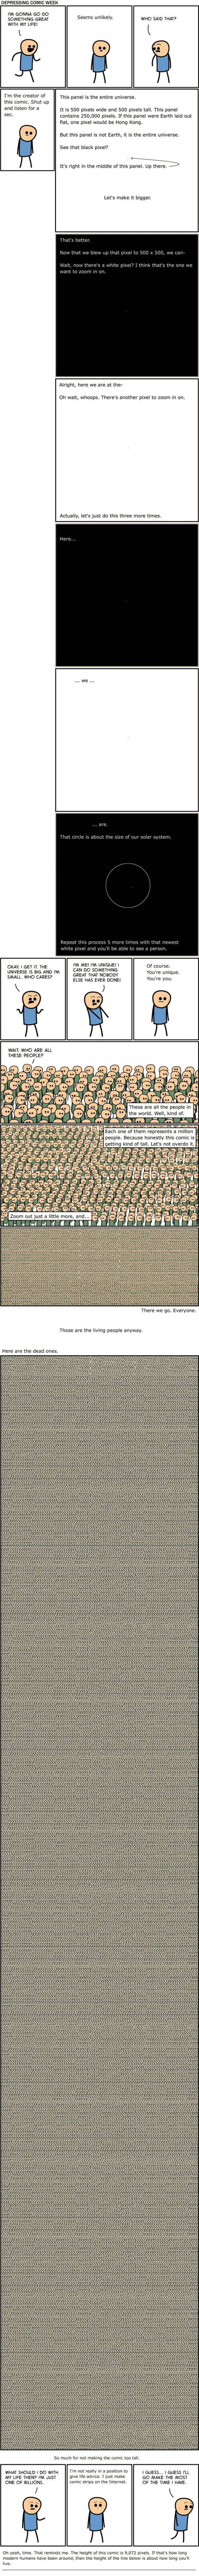 Depressing Comics That Will Make You Want To Curl Up And Cry (14 pics)